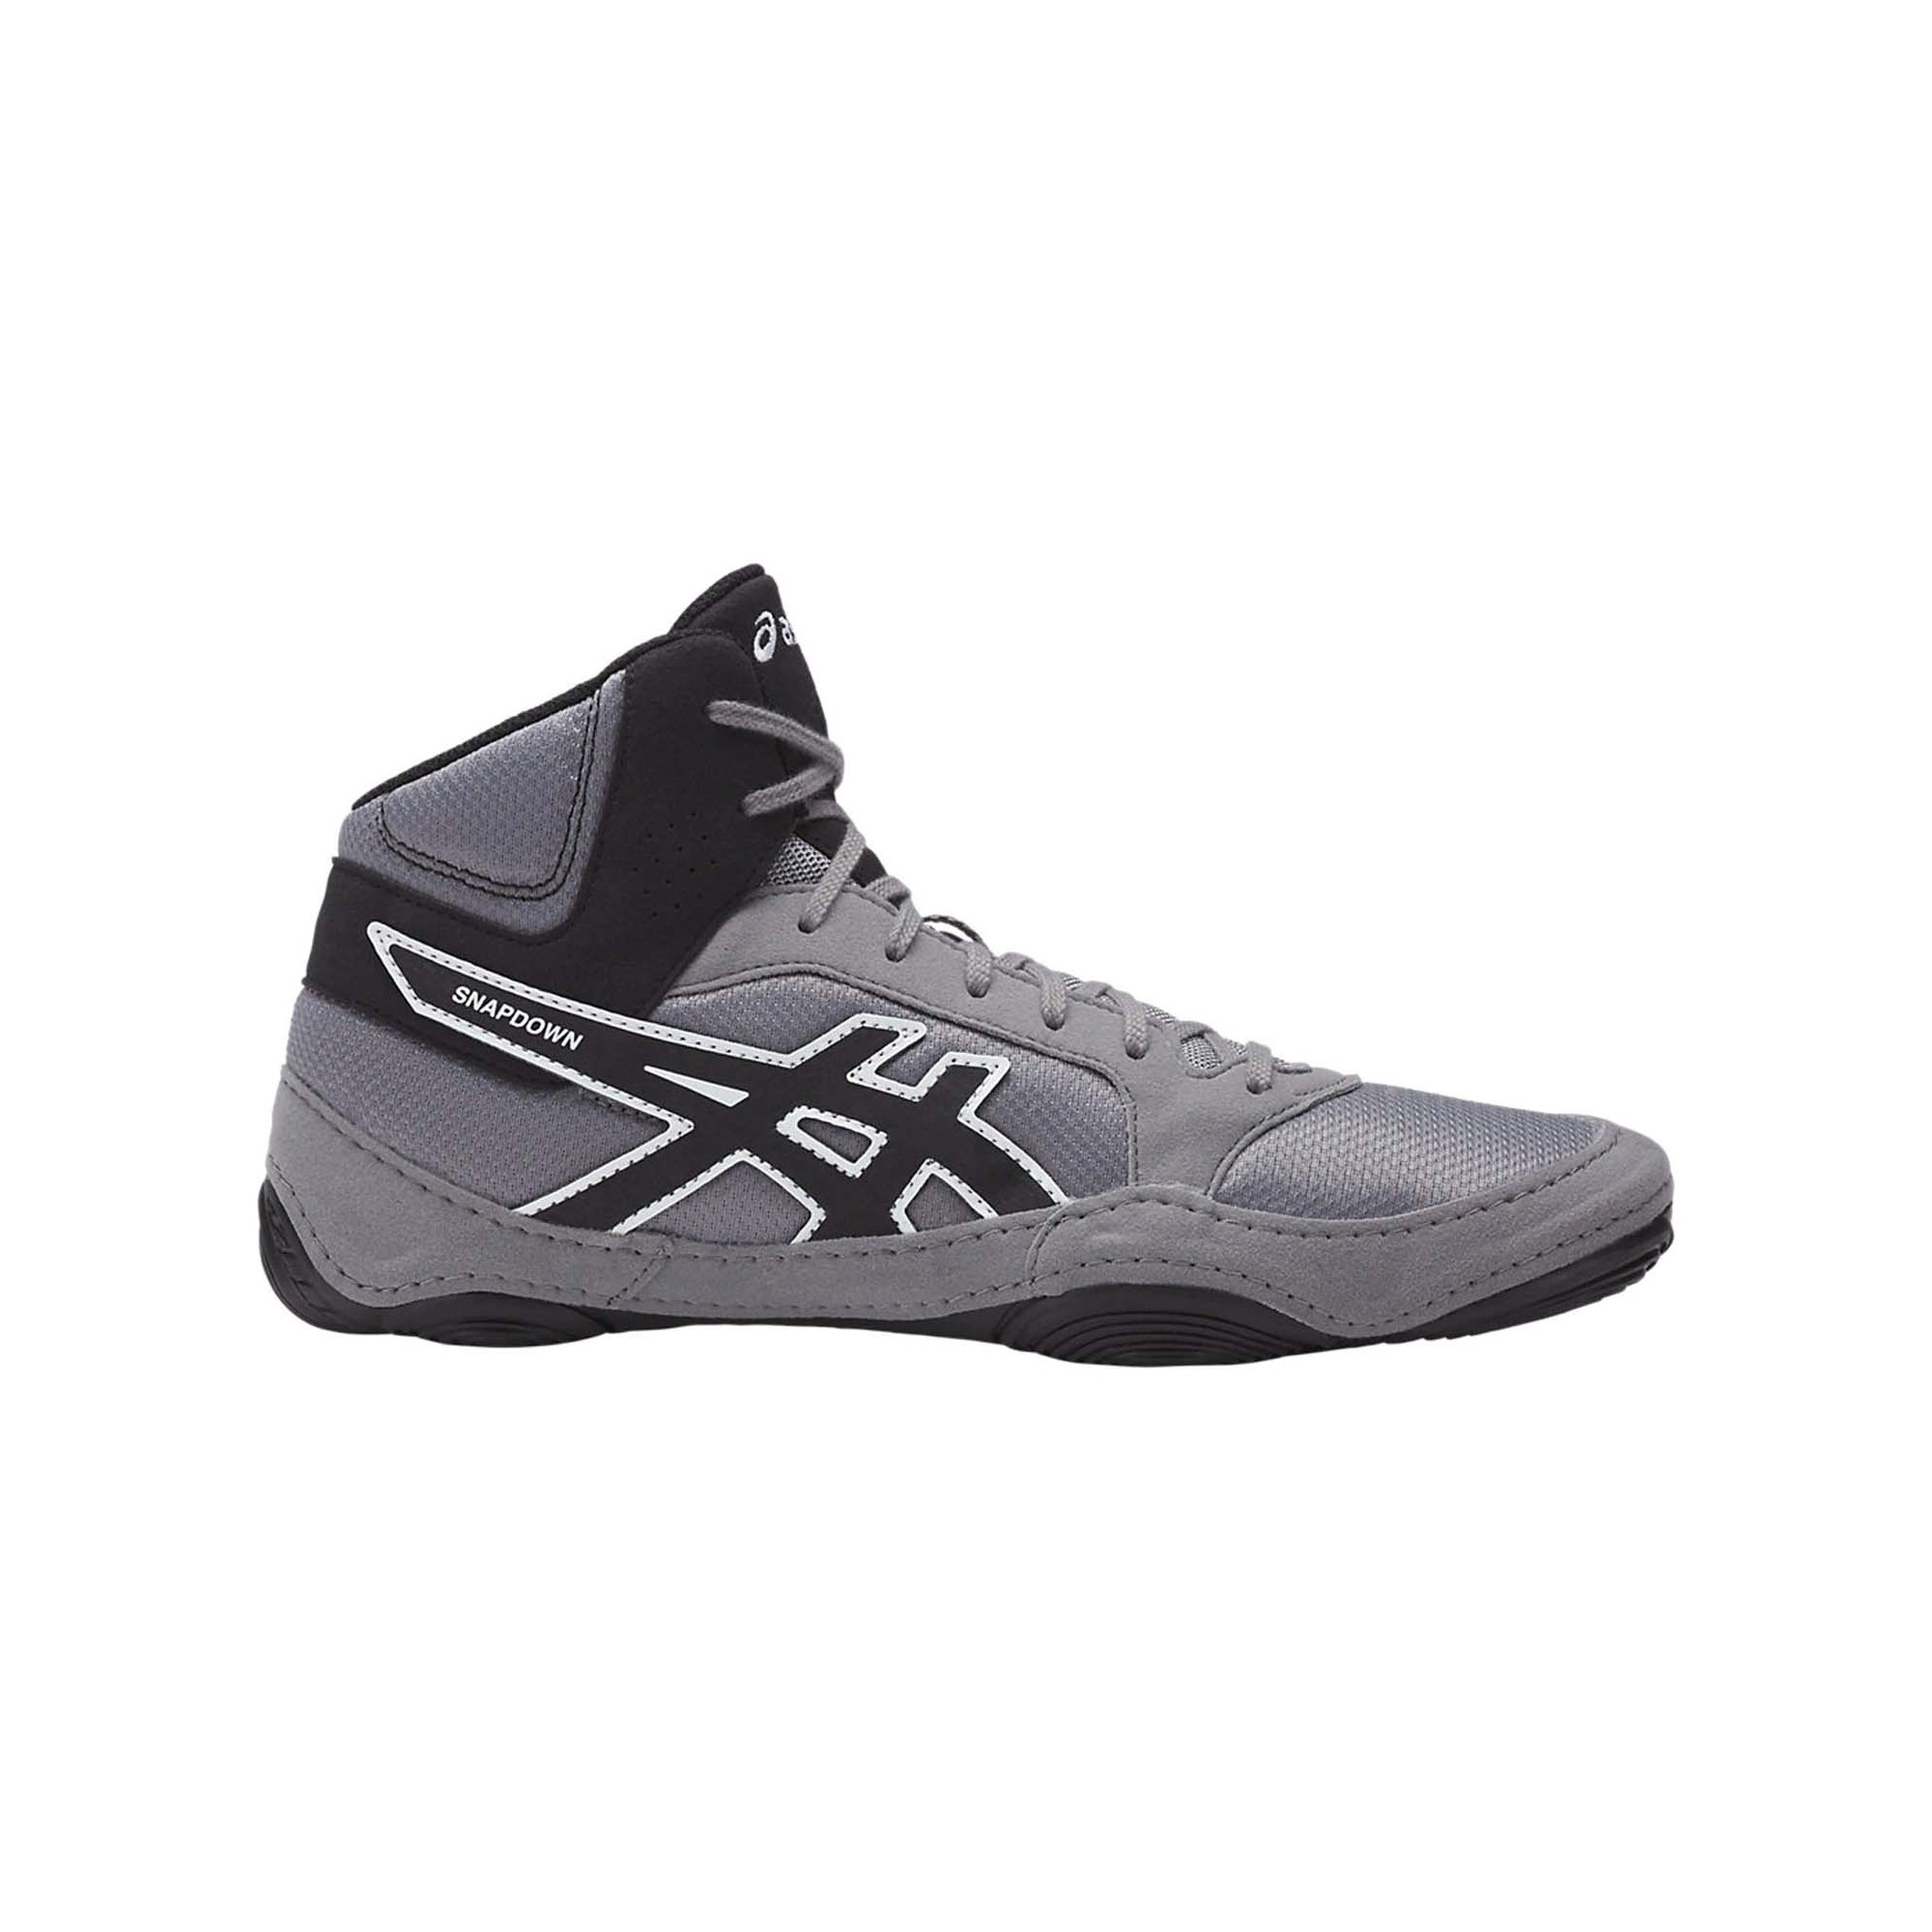 Men's Snapdown Asics 2 Aluminumblacksilver Wrestling Shoes E2YD9WIH